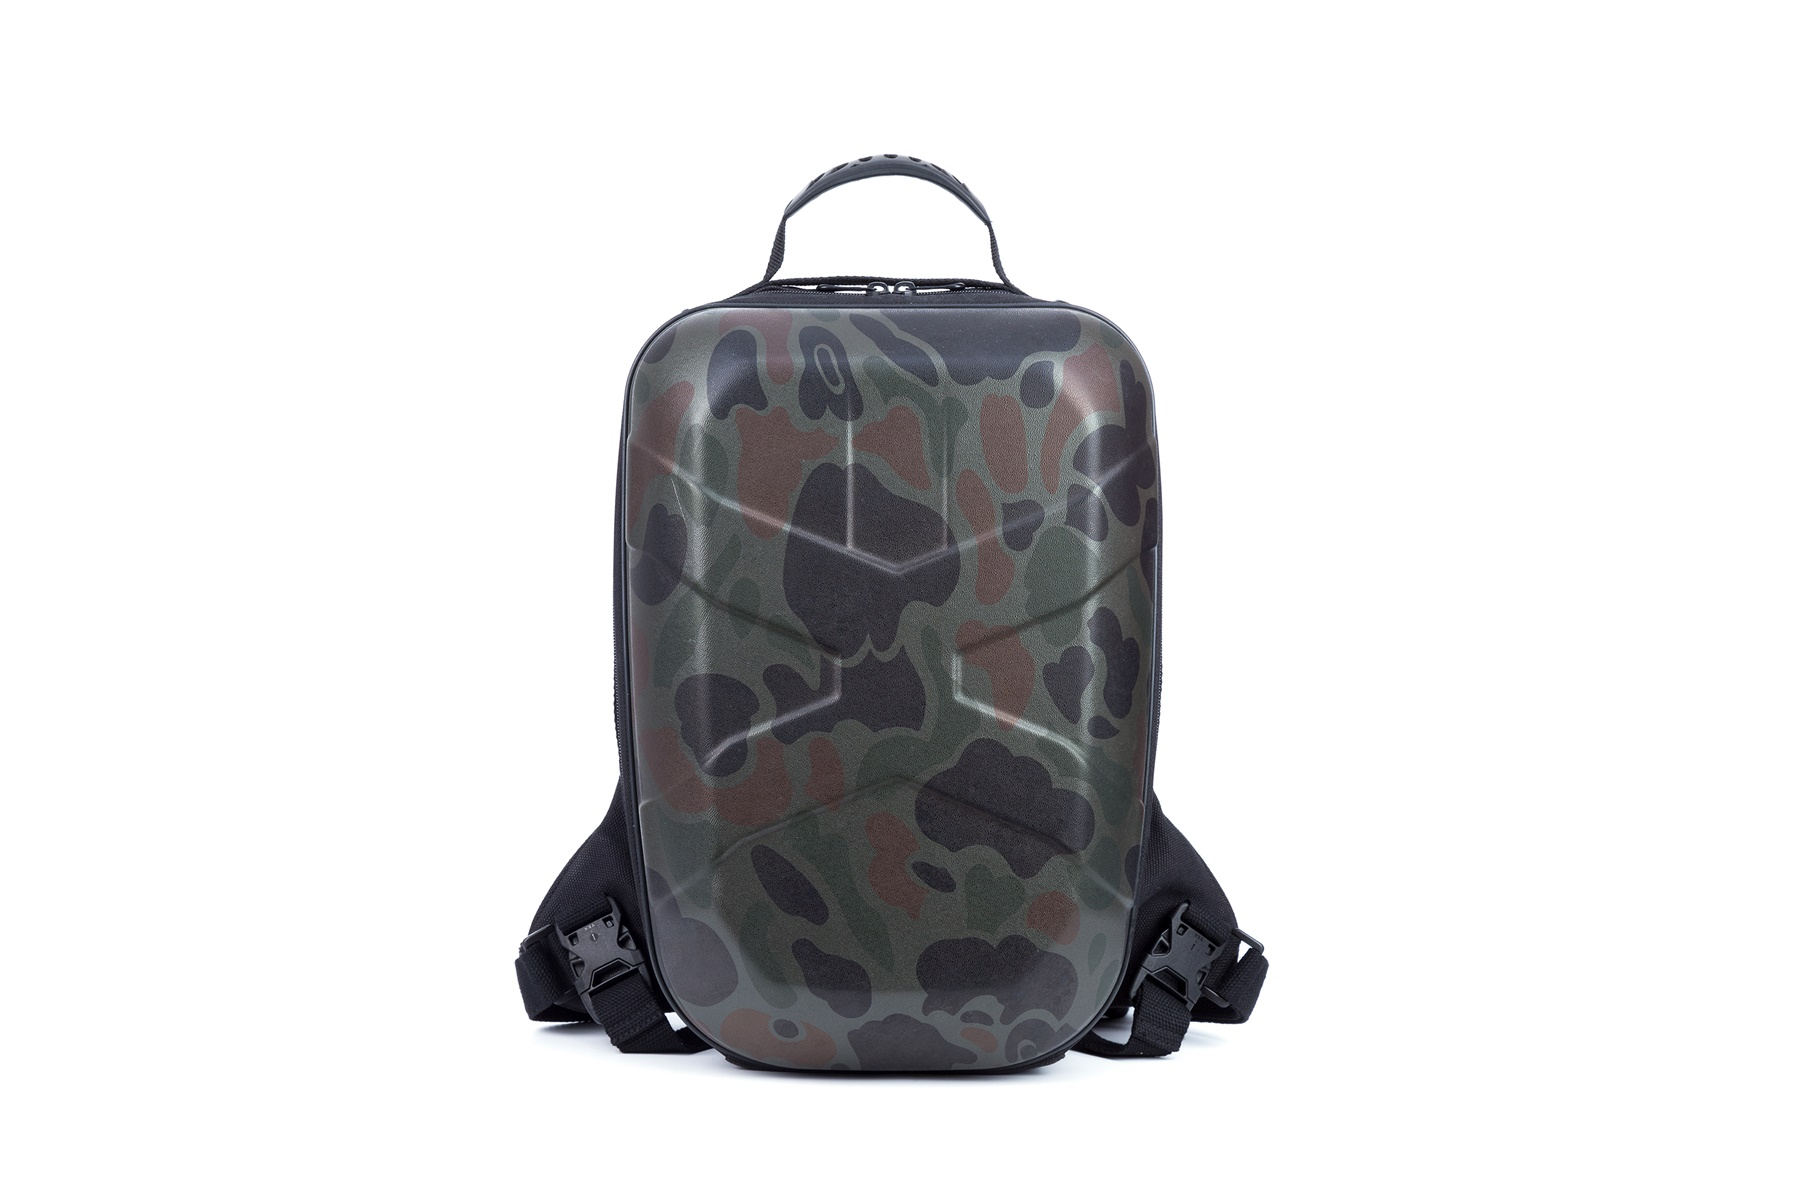 GF bags-Manufacturer Of Military Style Backpack And Bag Tactical - GF Bags